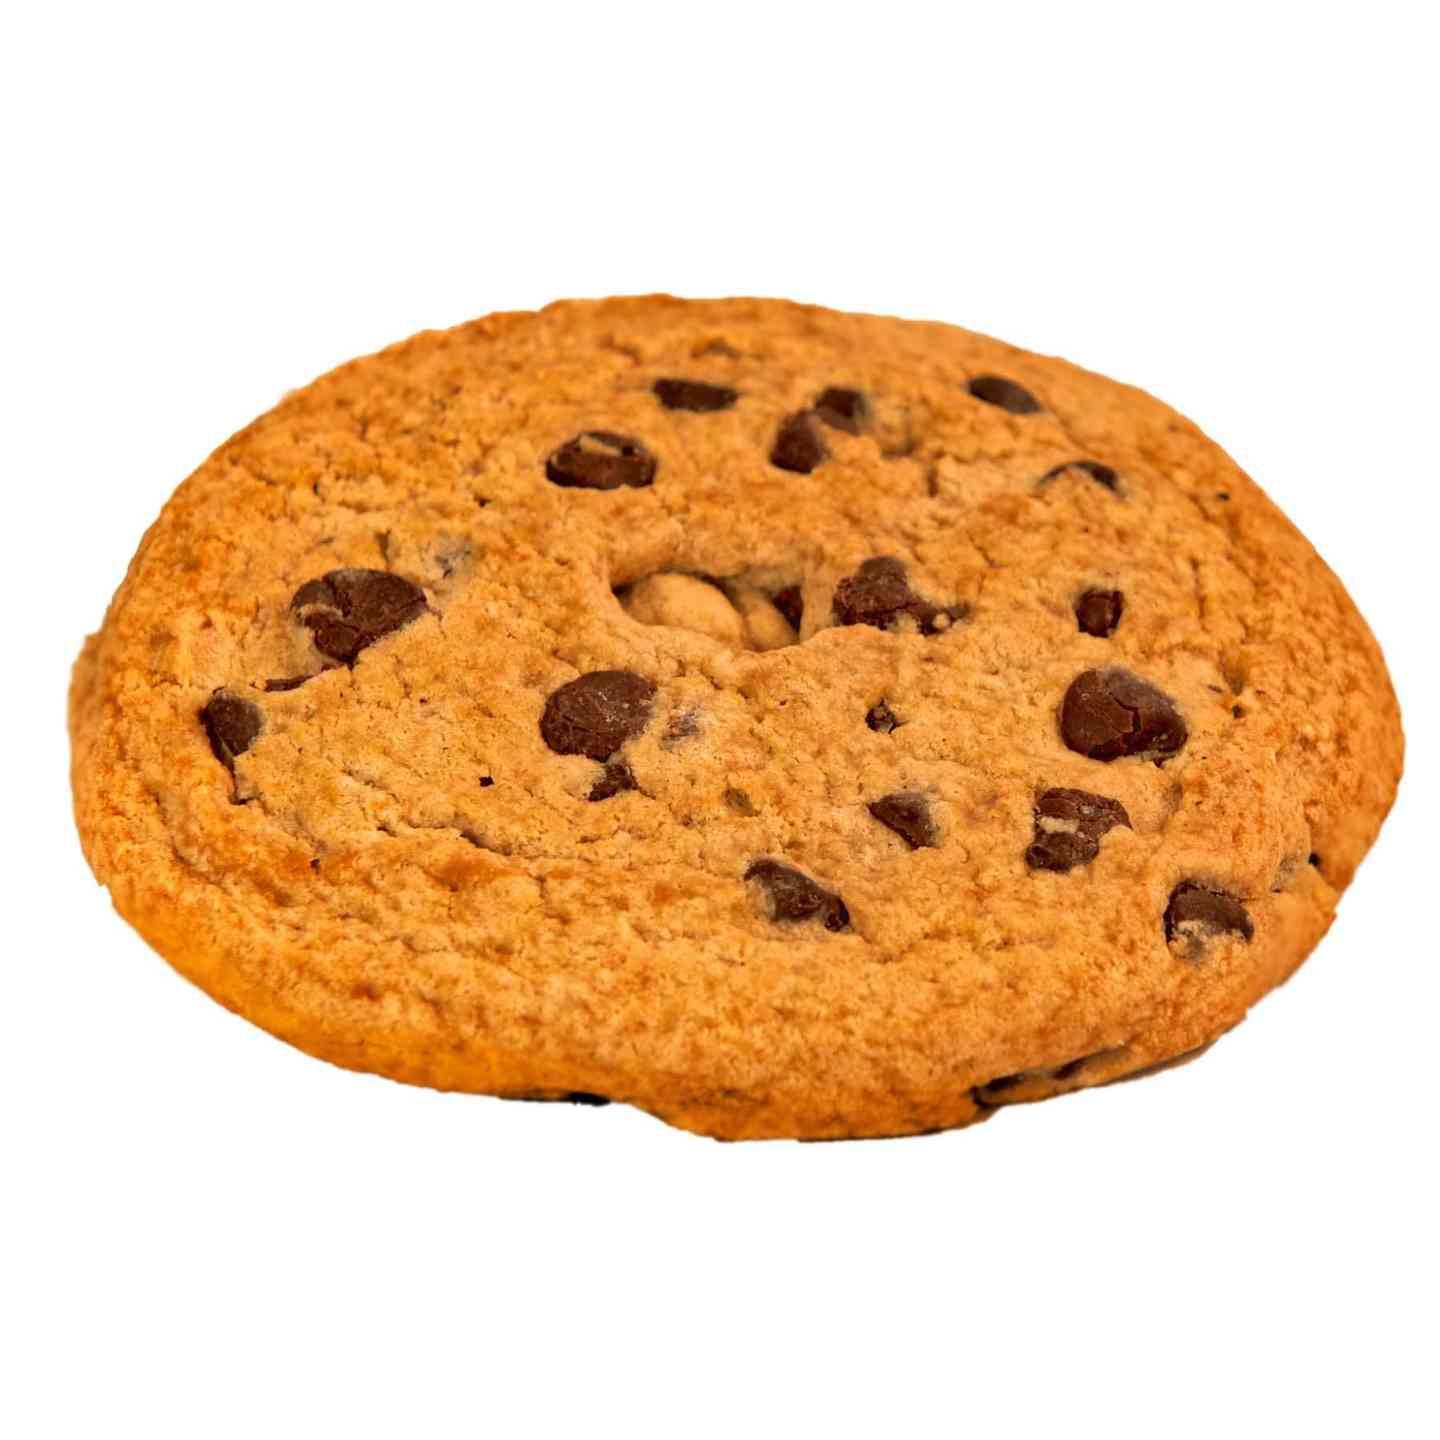 XL Choco-Chip Cookie